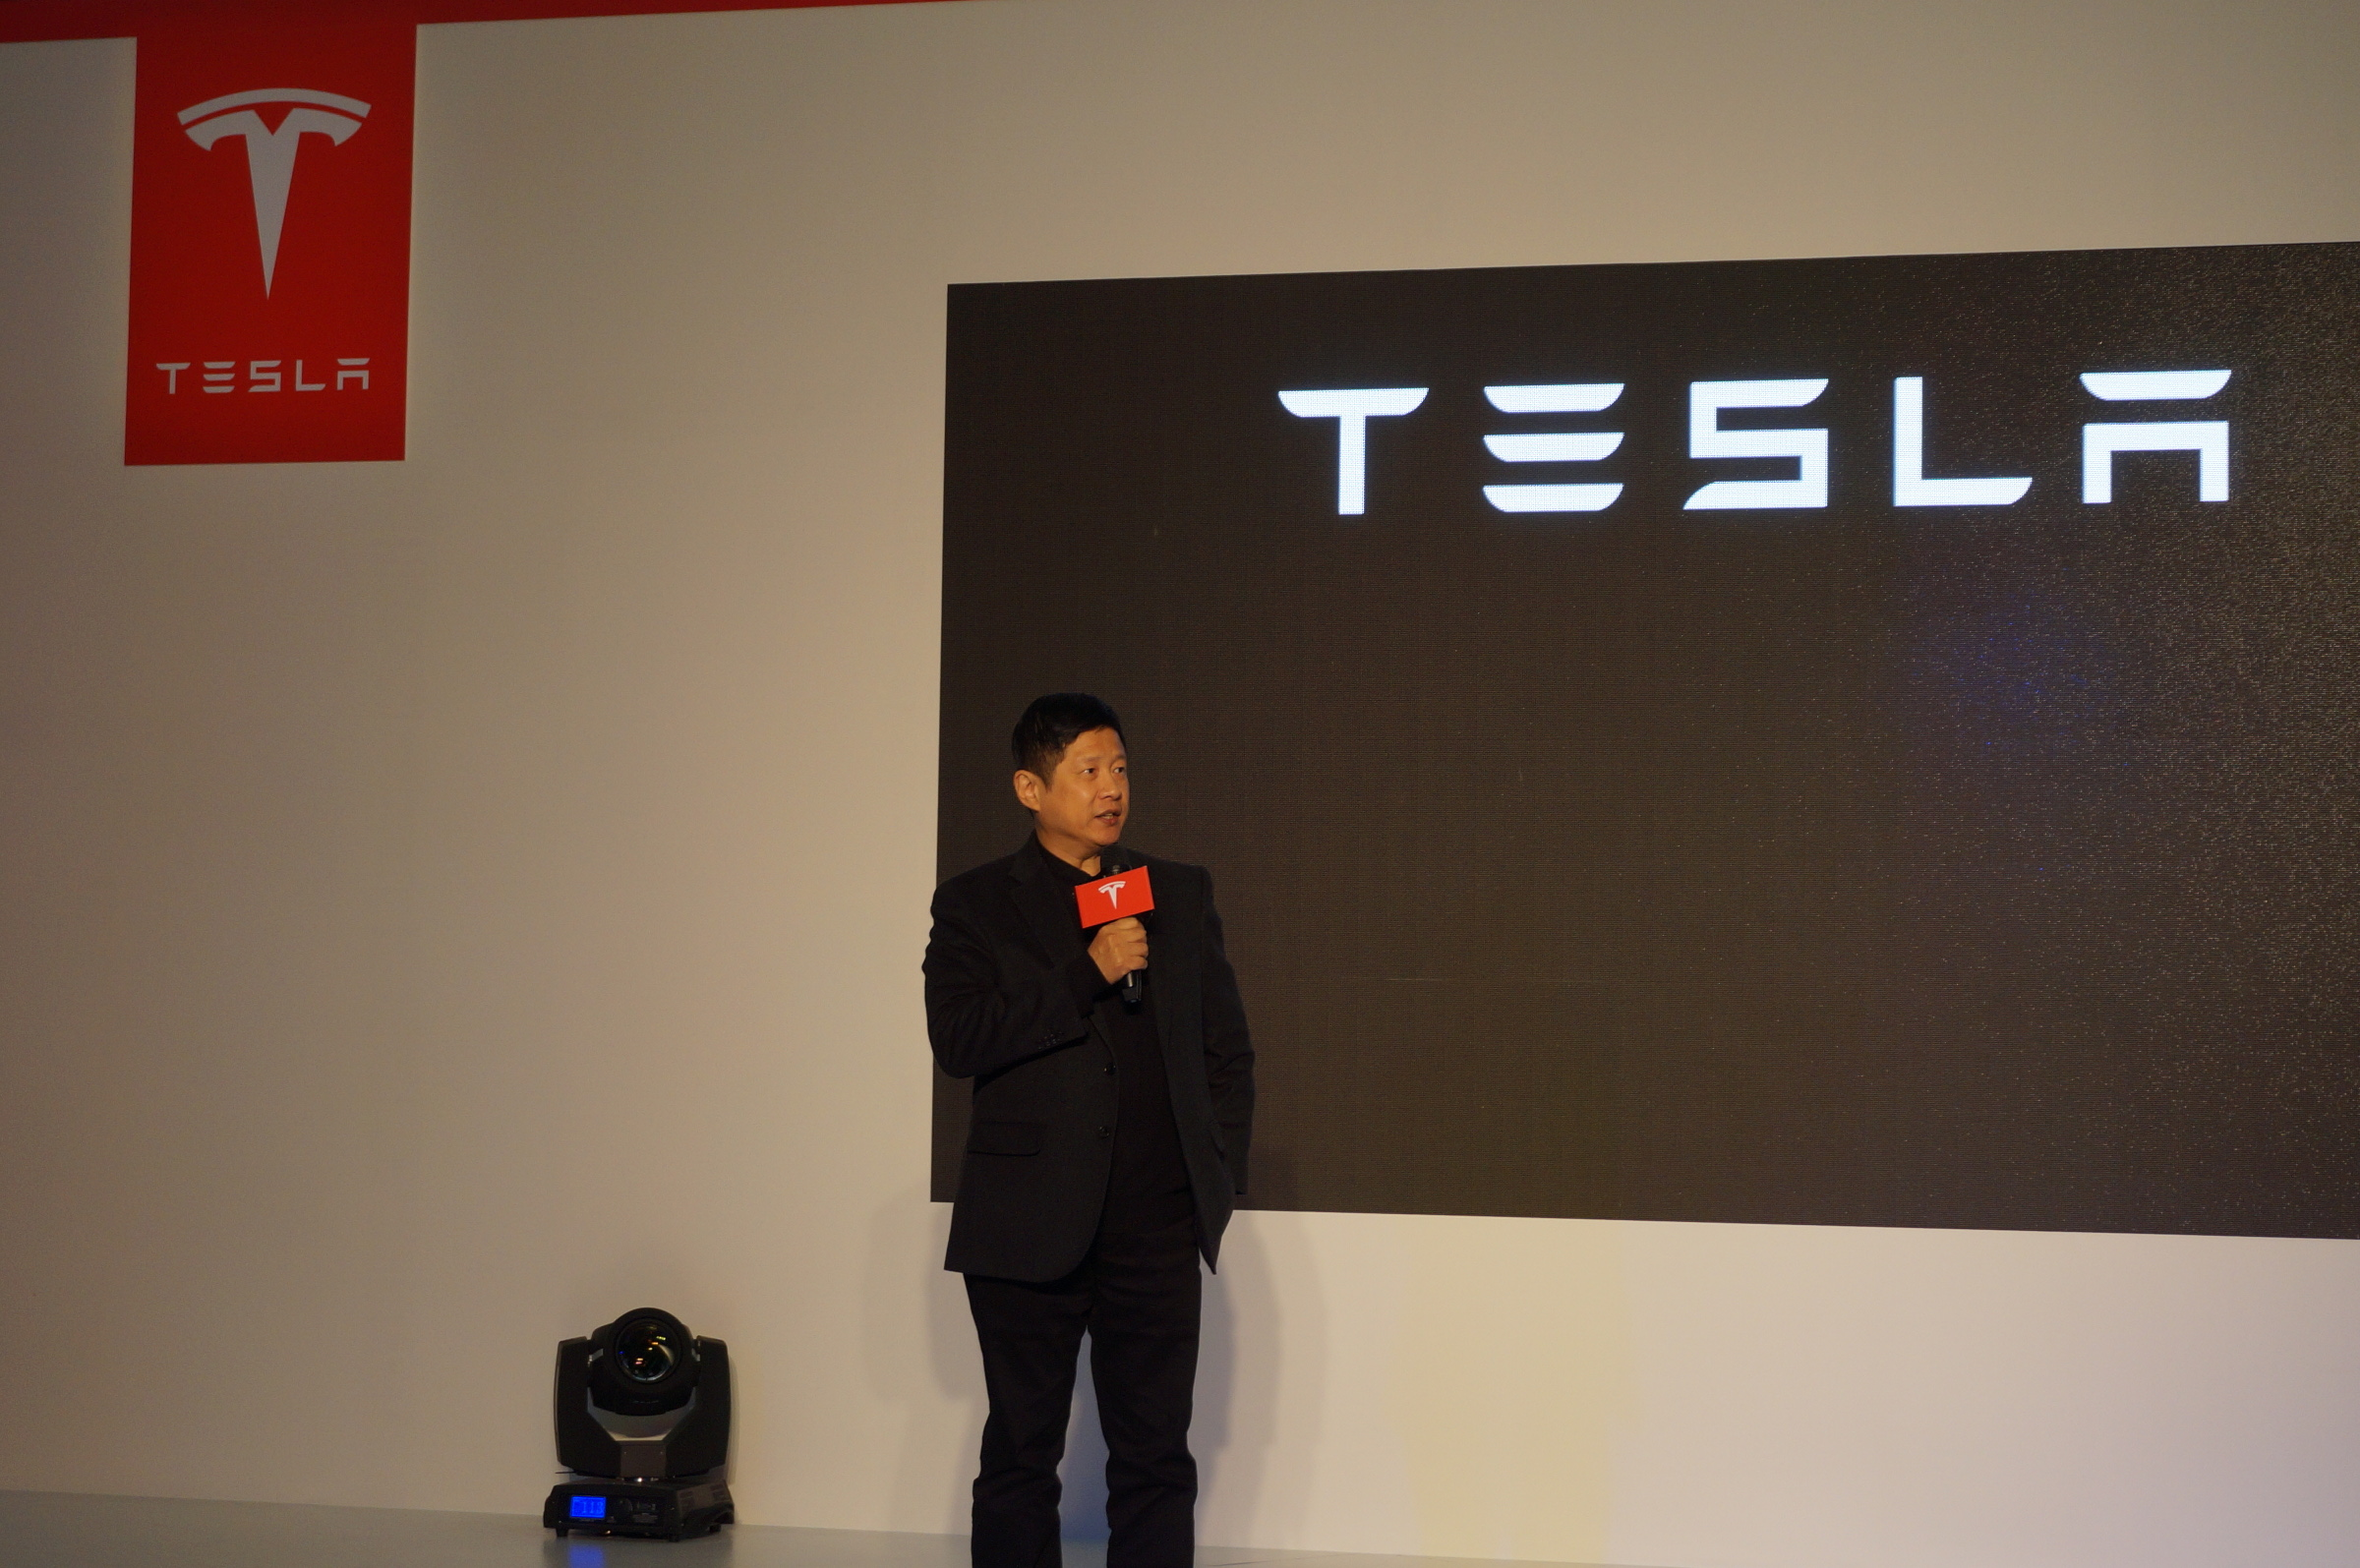 Tesla-Taiwan-taipei-economic-development-commissioner